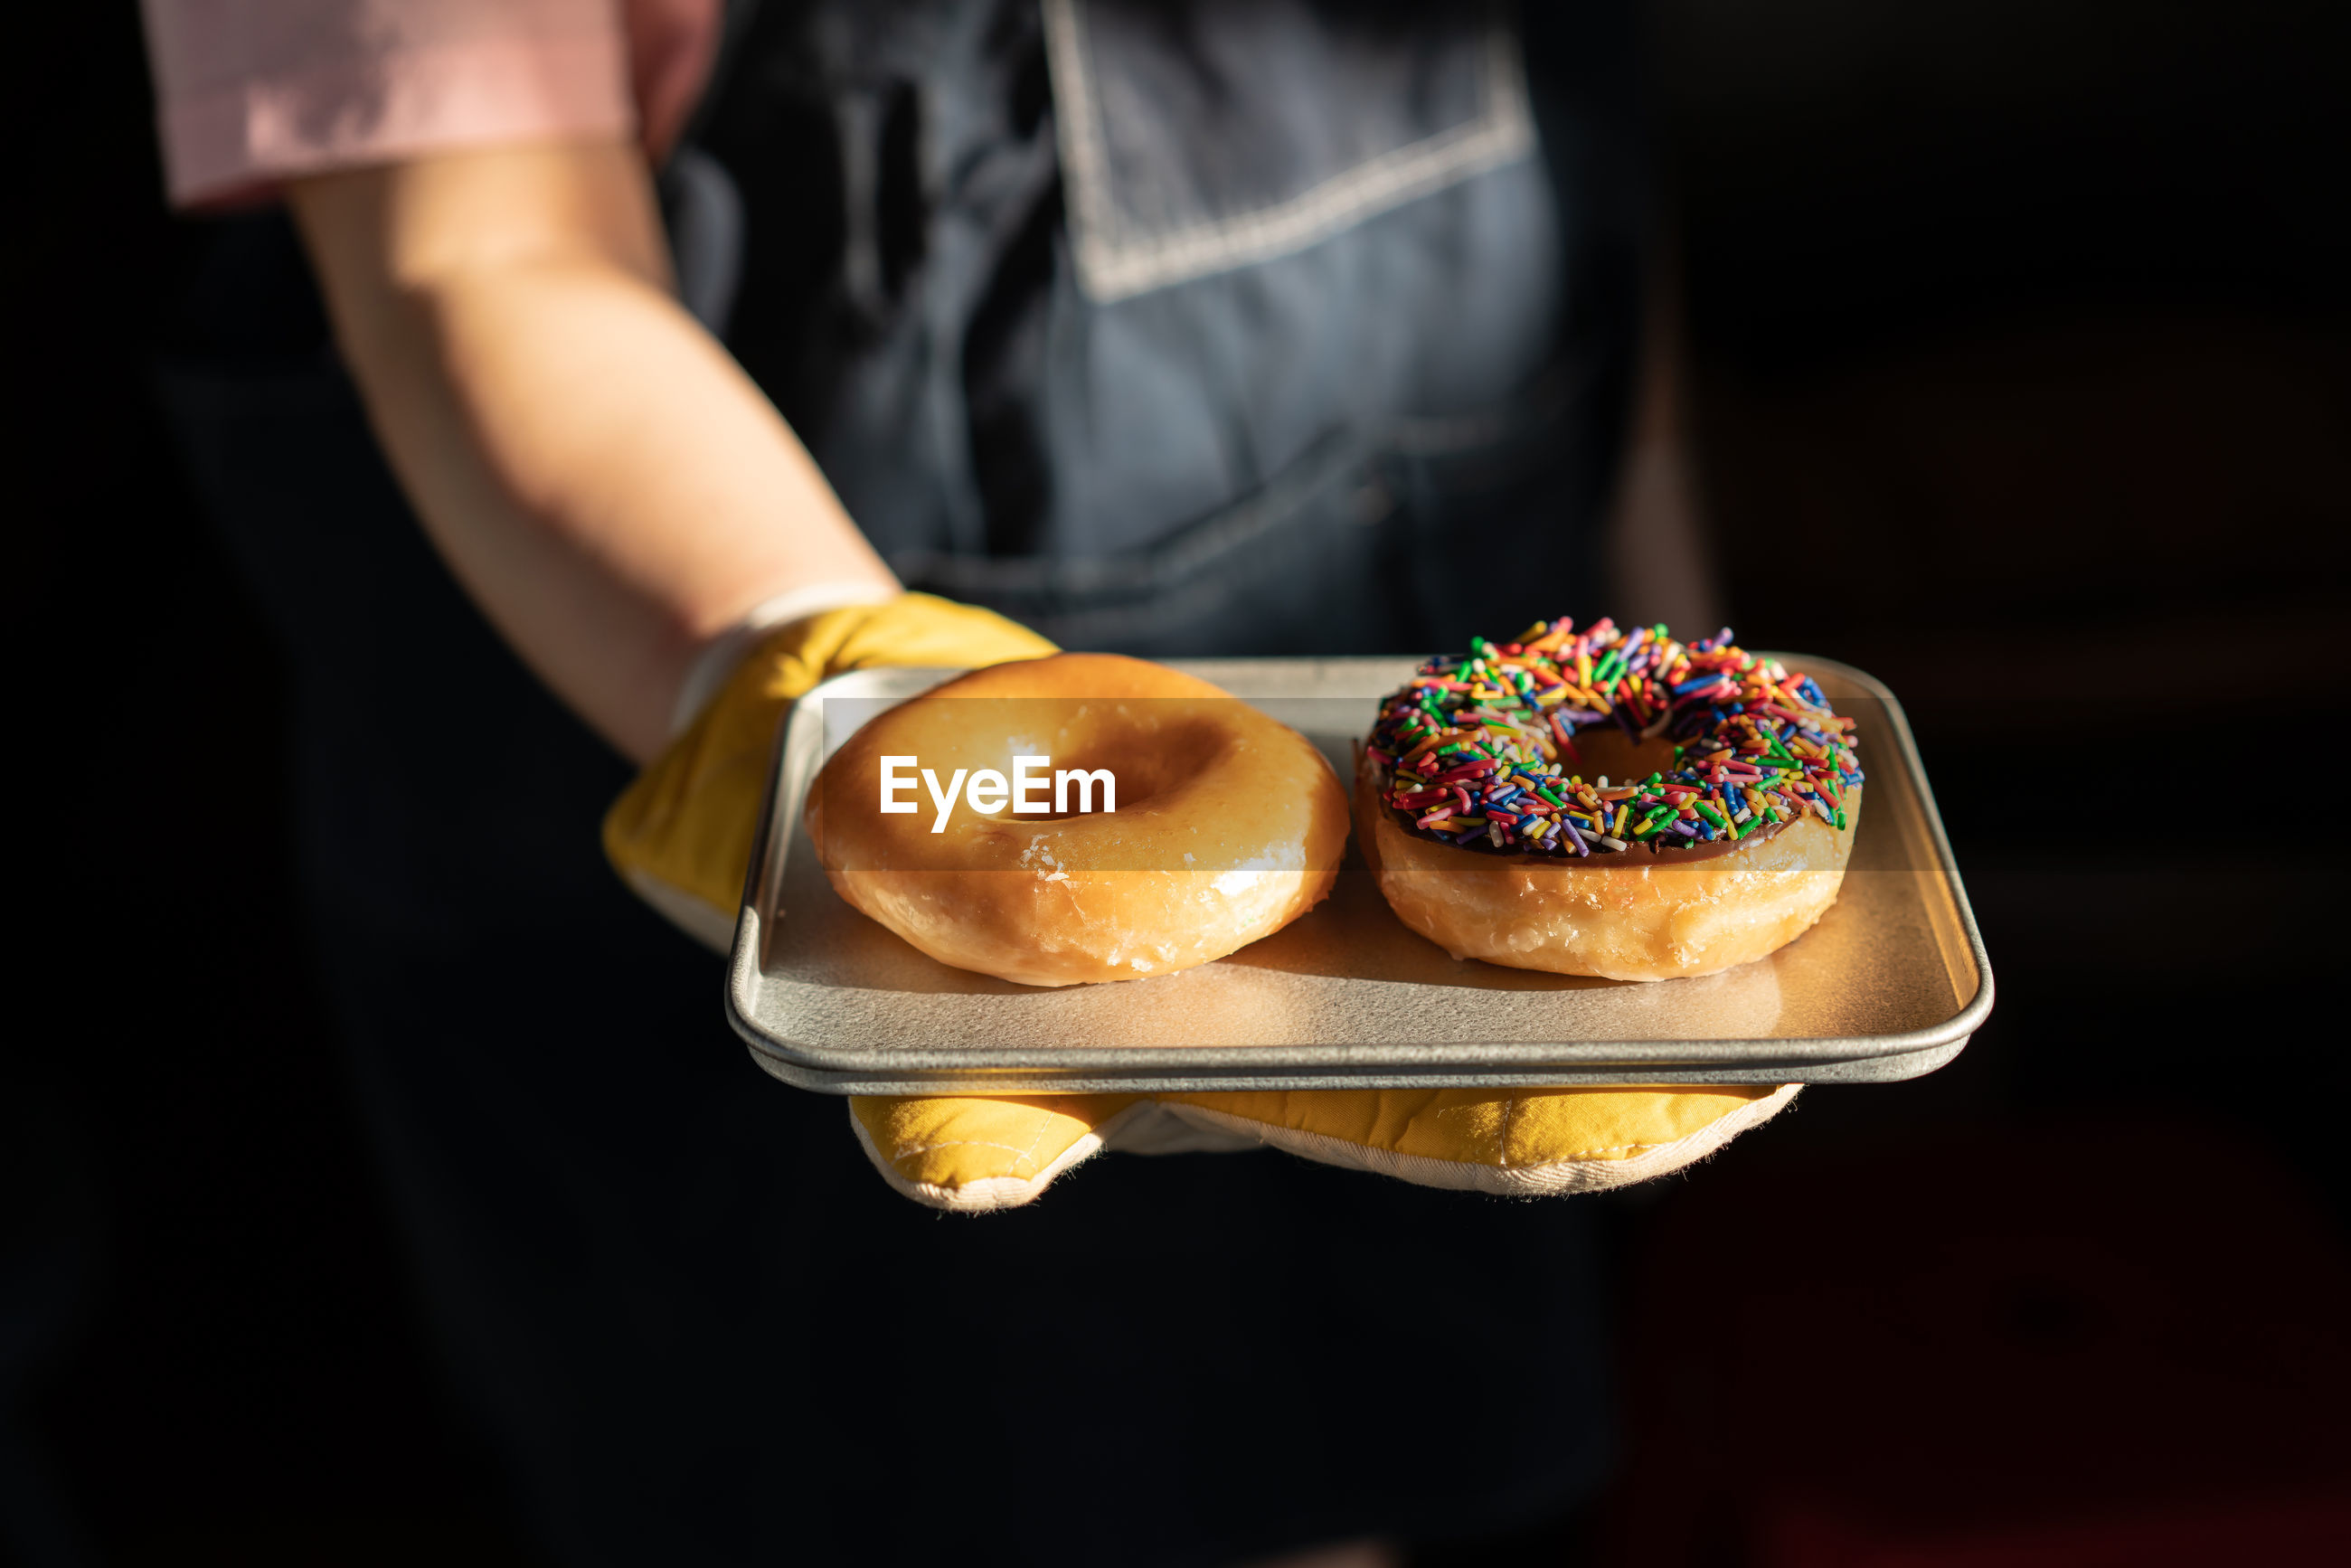 Midsection of person holding donut against black background